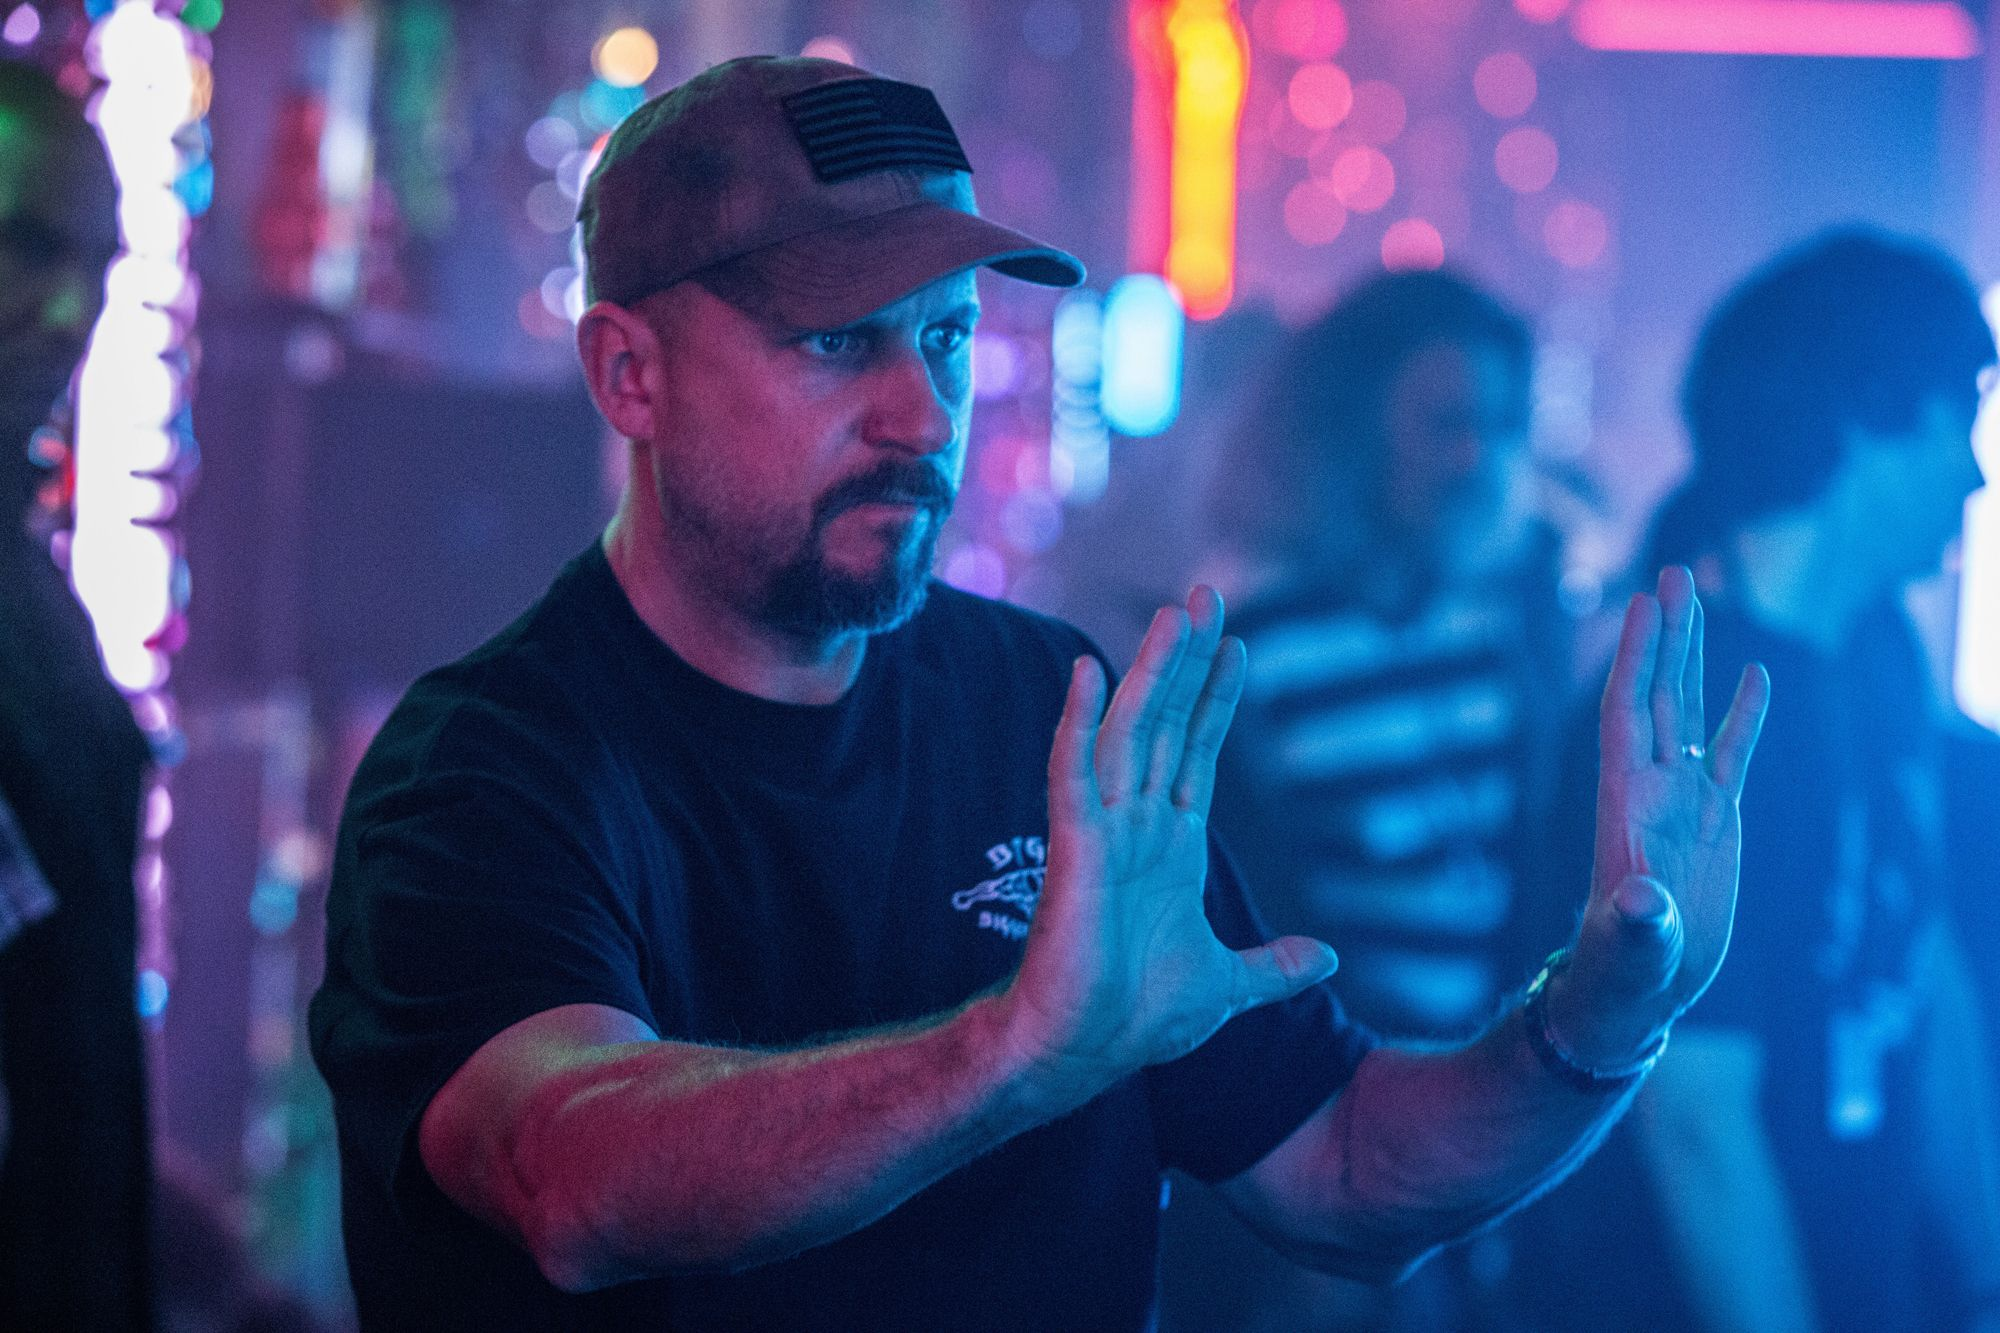 David Ayer leitet Gritty Crime Thriller 'Tax Collector